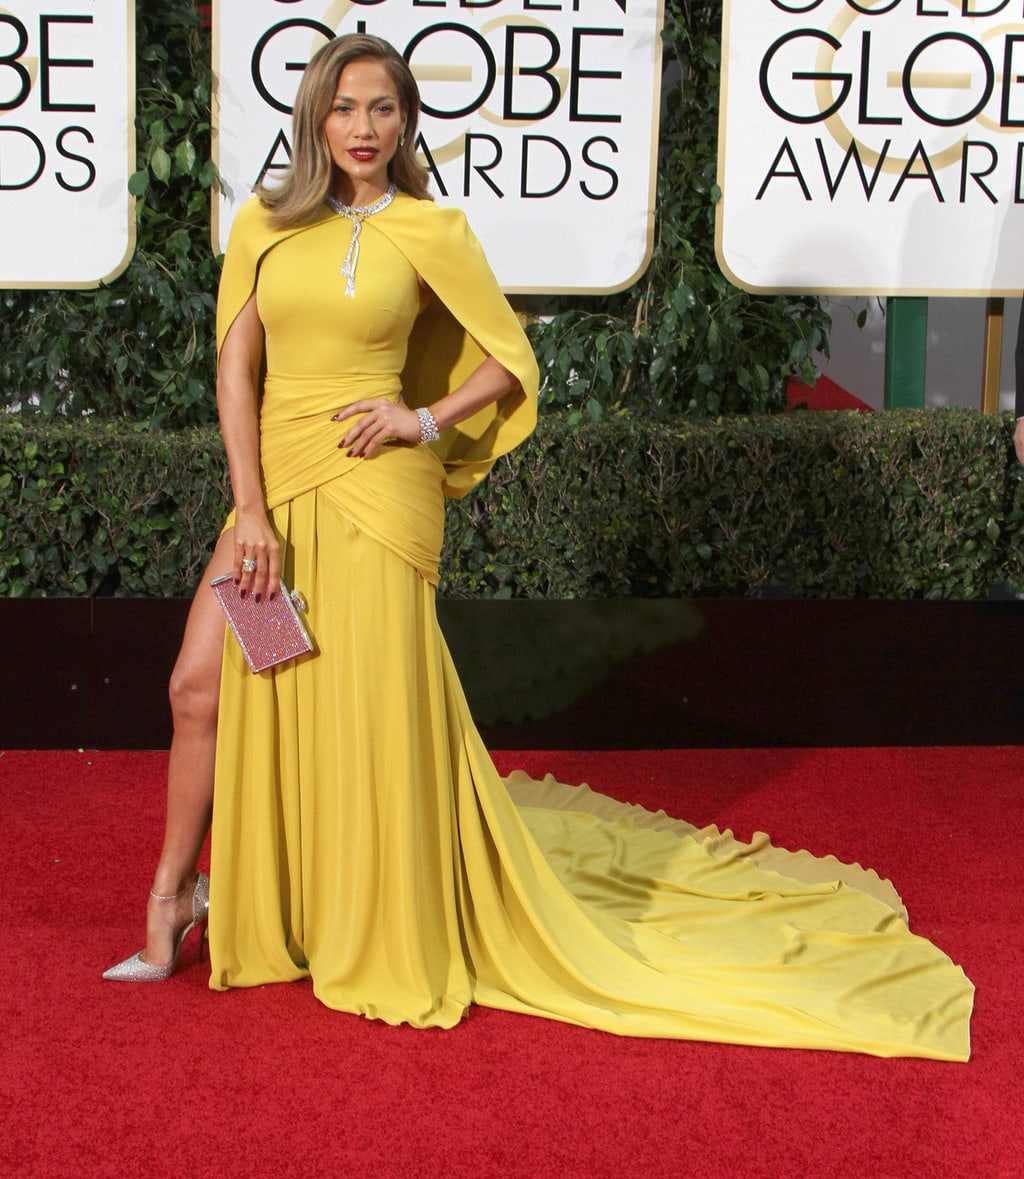 JLo at the 2016 Golden Globes